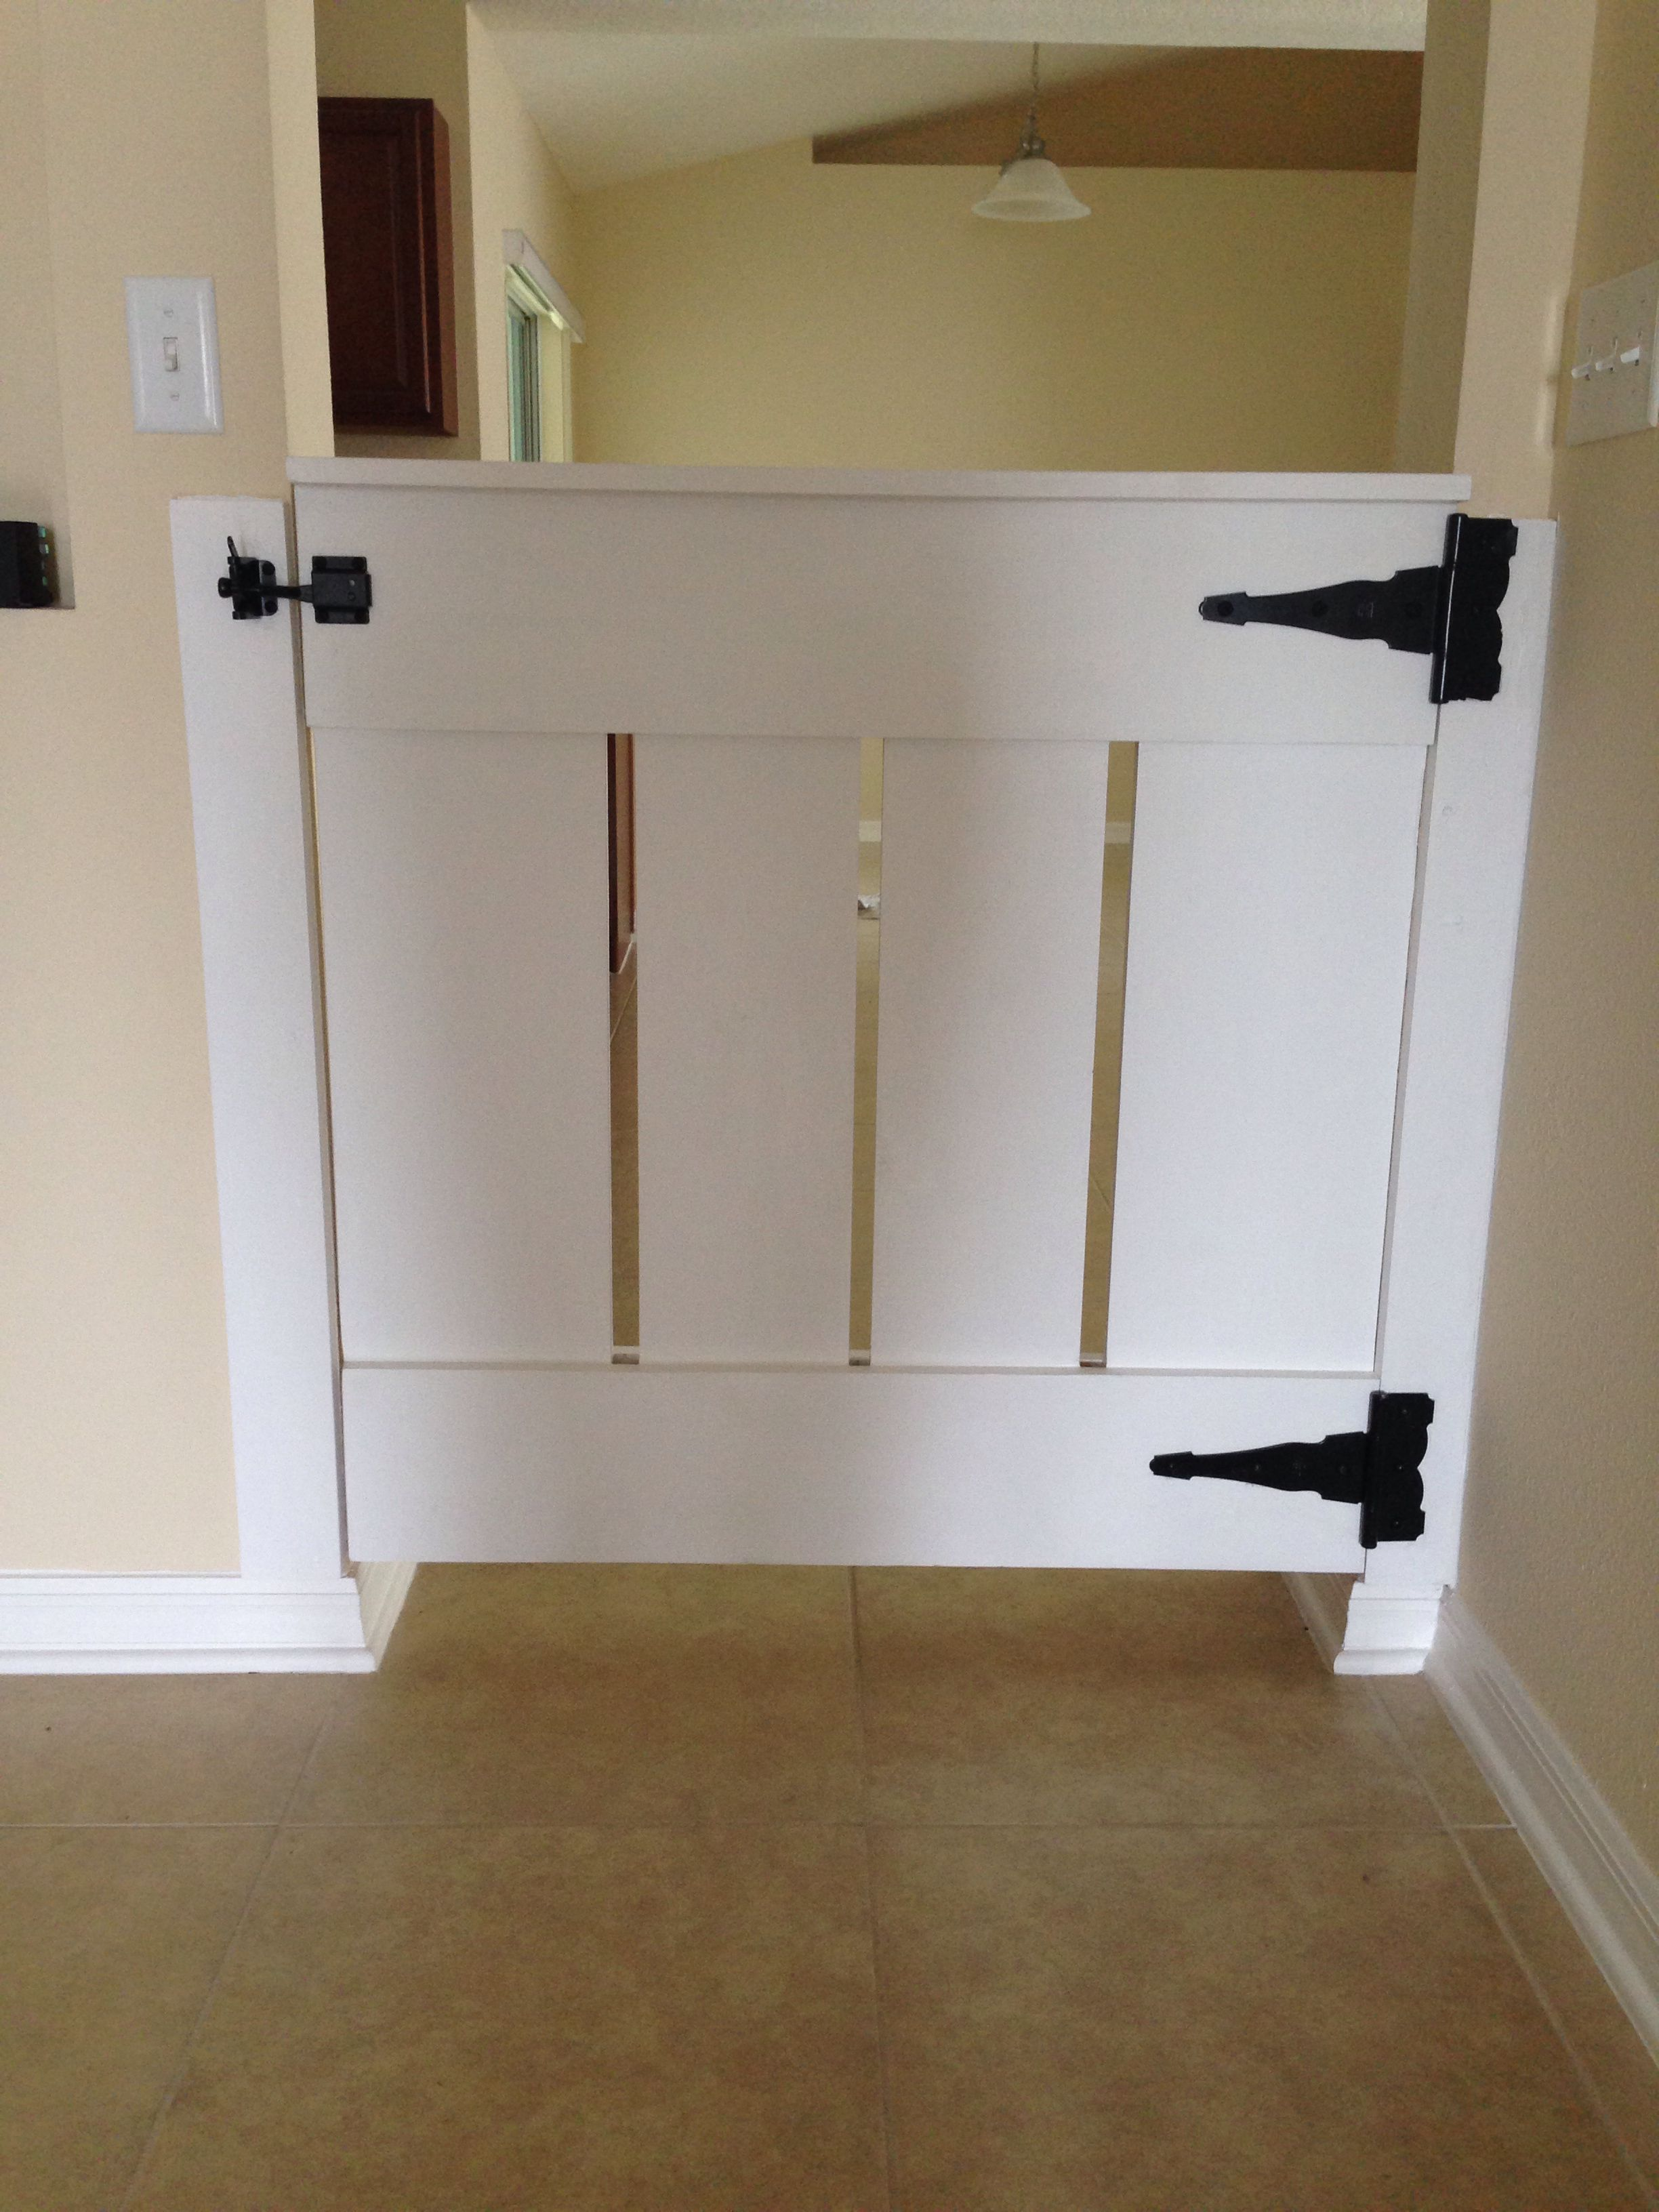 Homemade Wood Baby Gate Built By Ed Starnes For The Home